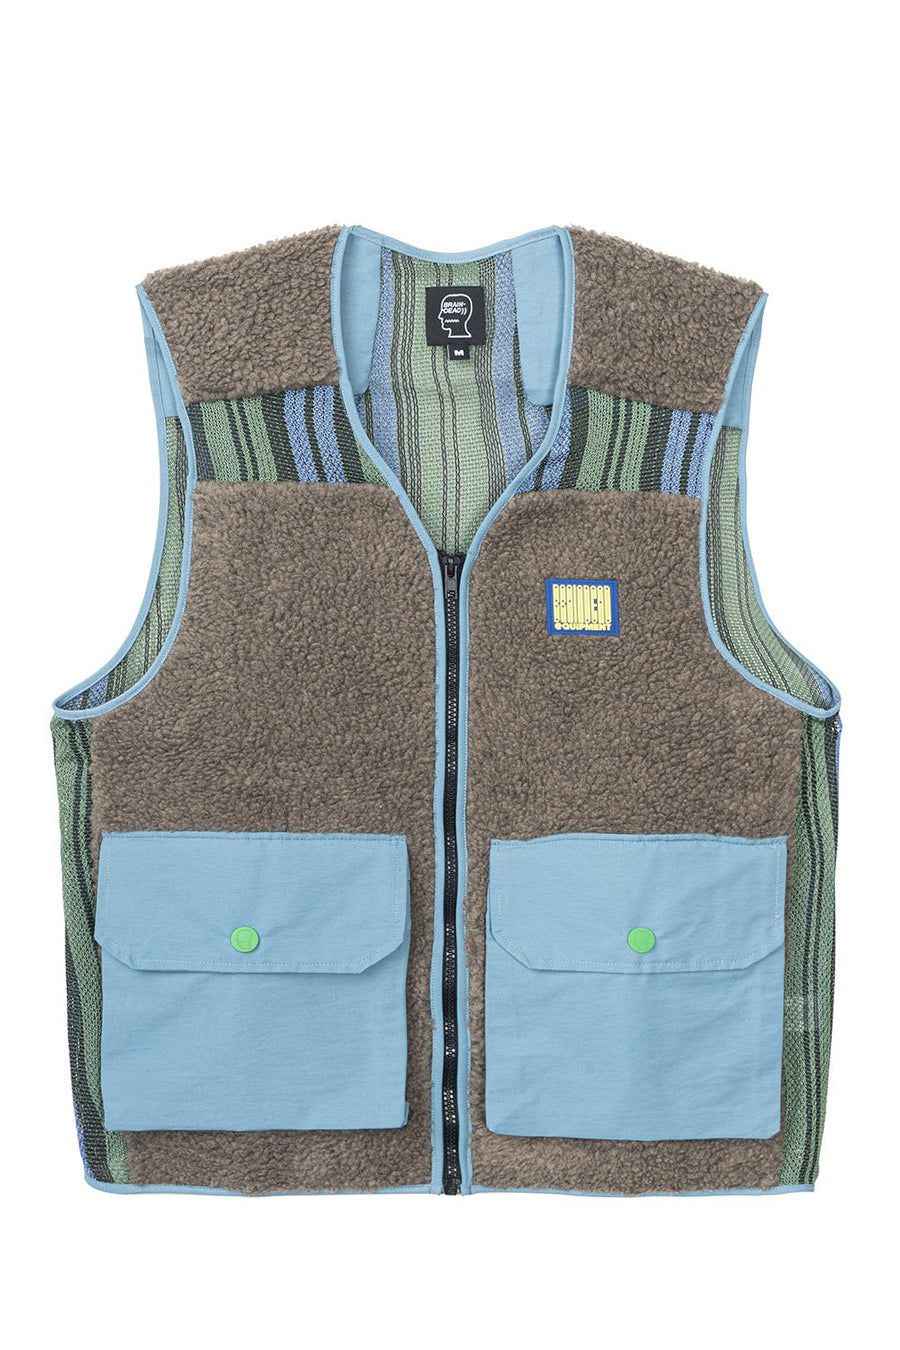 Brain Dead - Brown Sherpa Tactical Vest